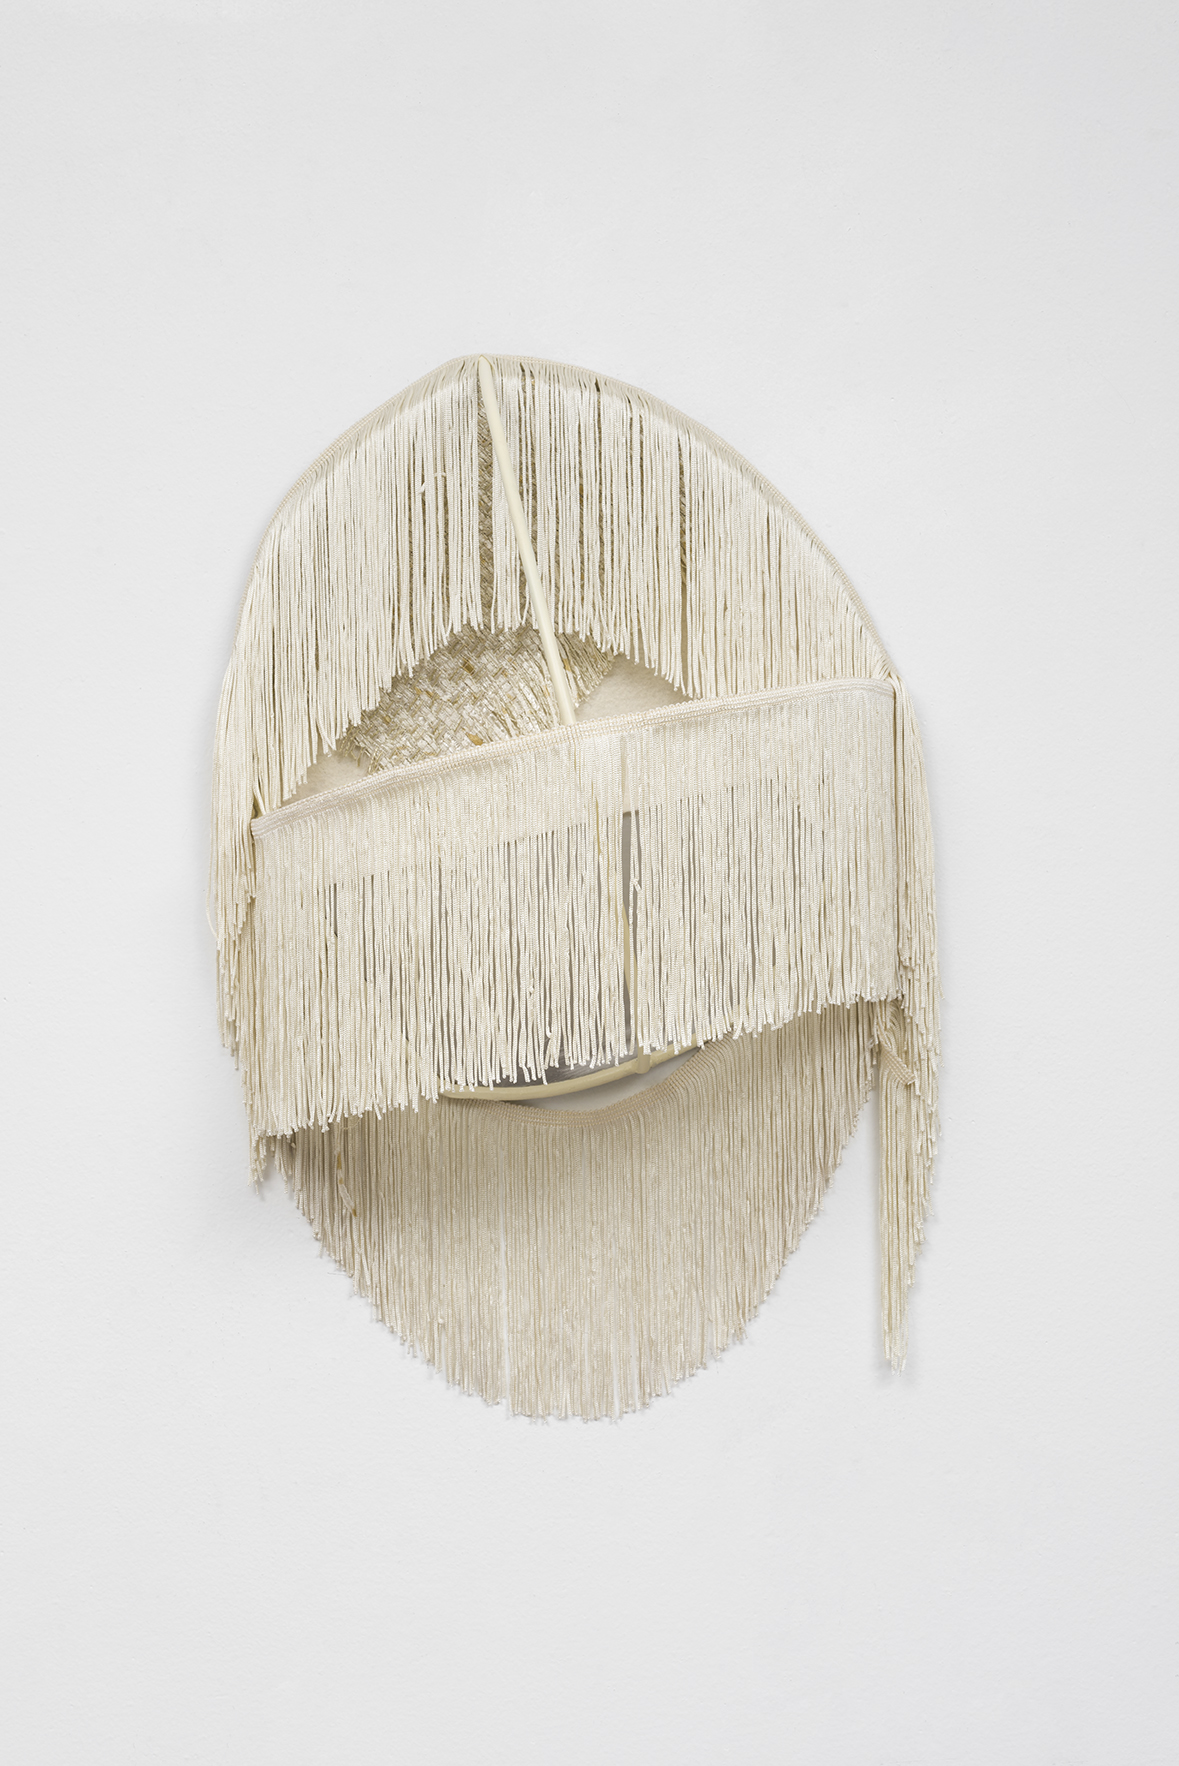 And She was She (Cream), 2016  Welded stainless steel, acrylic paint, aluminum, felt, and fringe  19 x 14 x 7 inches